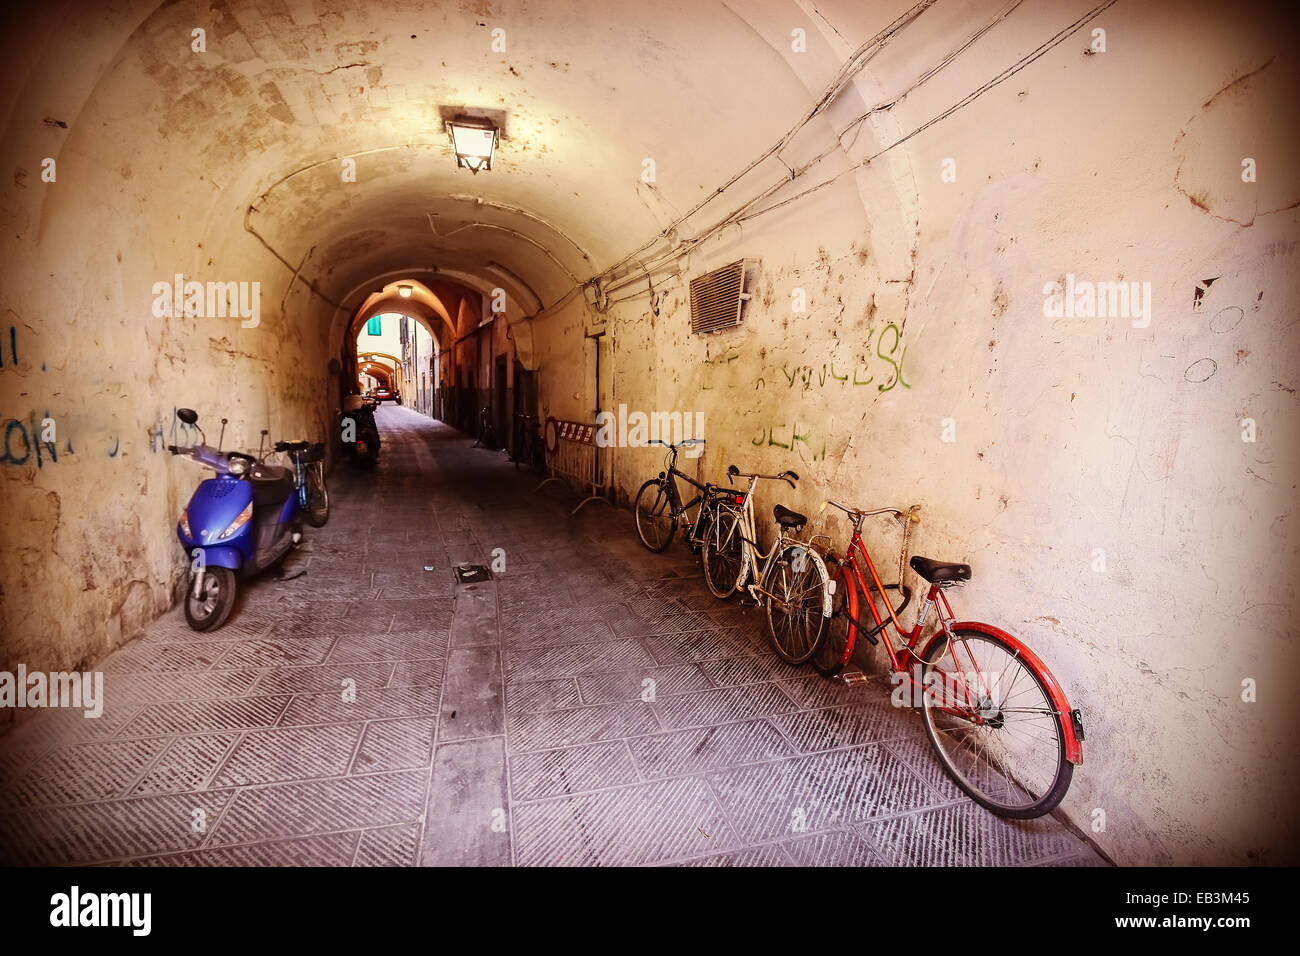 Retro filtered picture of neglected passage with bikes. - Stock Image